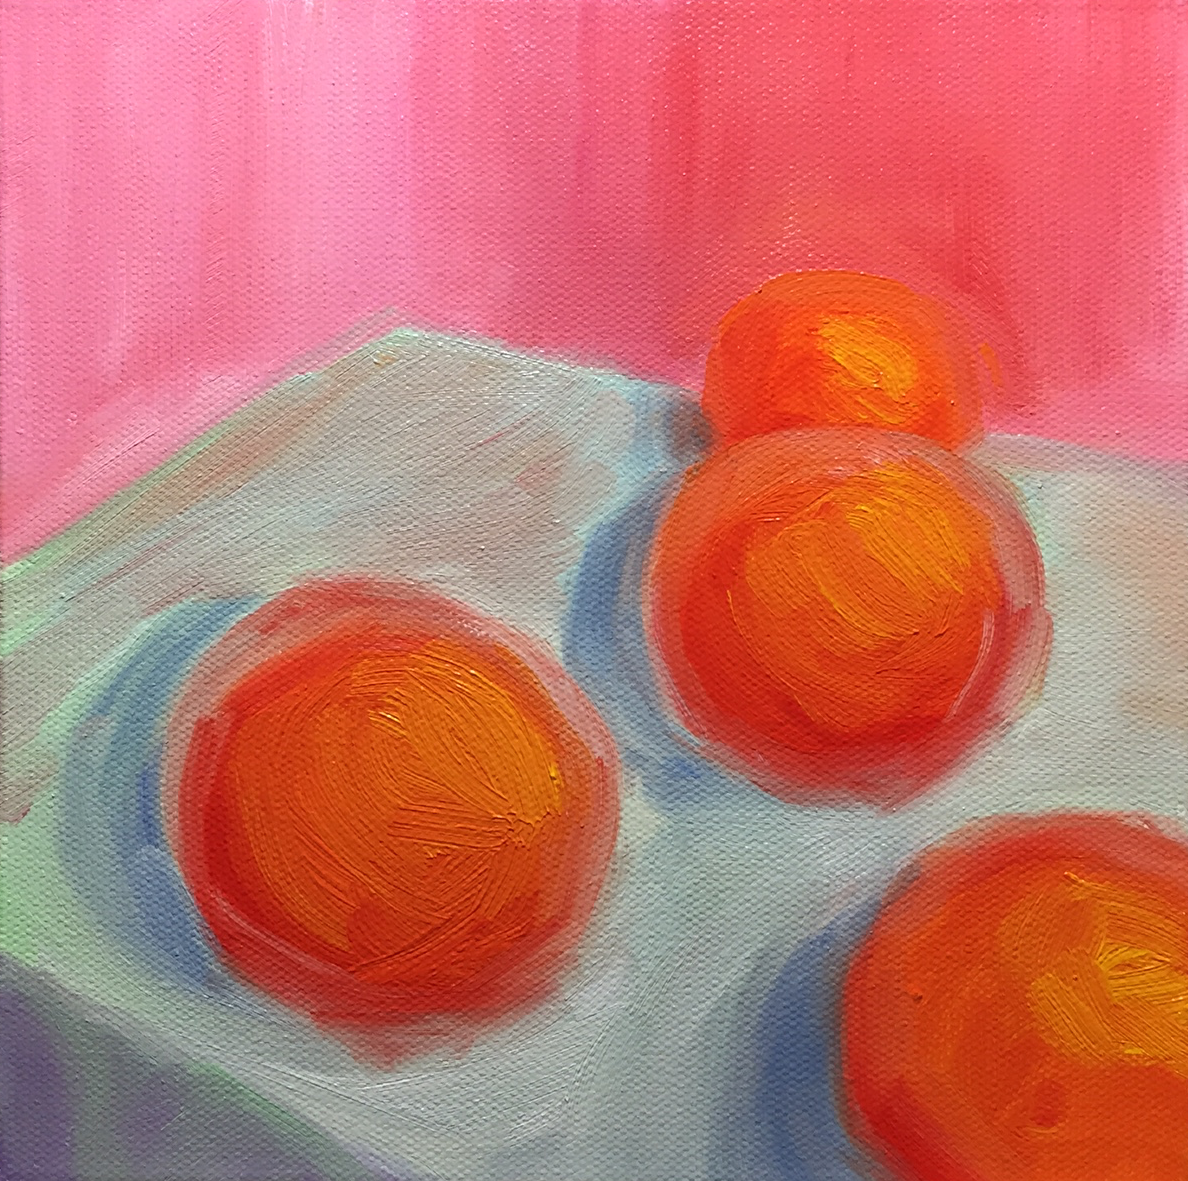 Fresh Oranges on Cotton Tablecloth in Pink Room